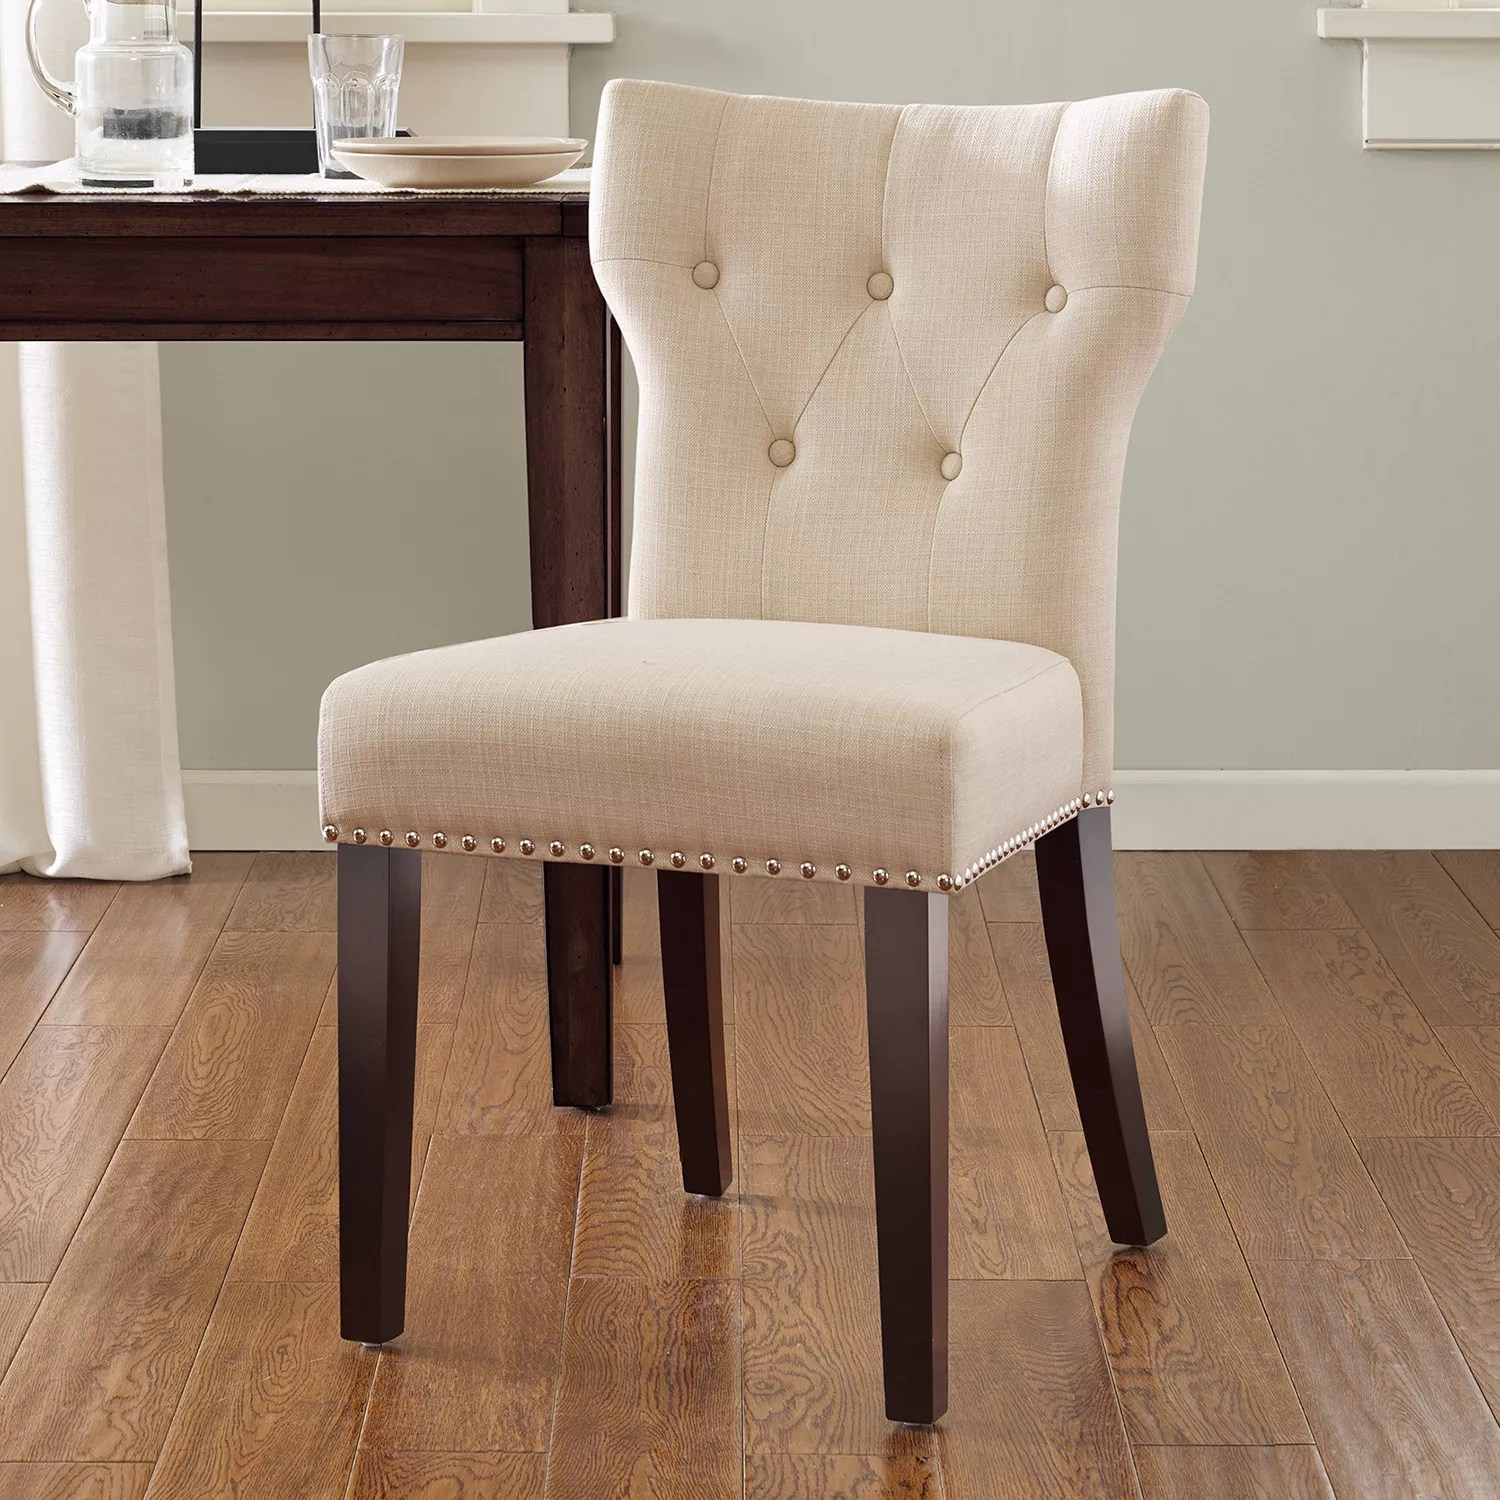 kohls dining chairs office chair youtube furniture kohl s madison park emilia tufted back